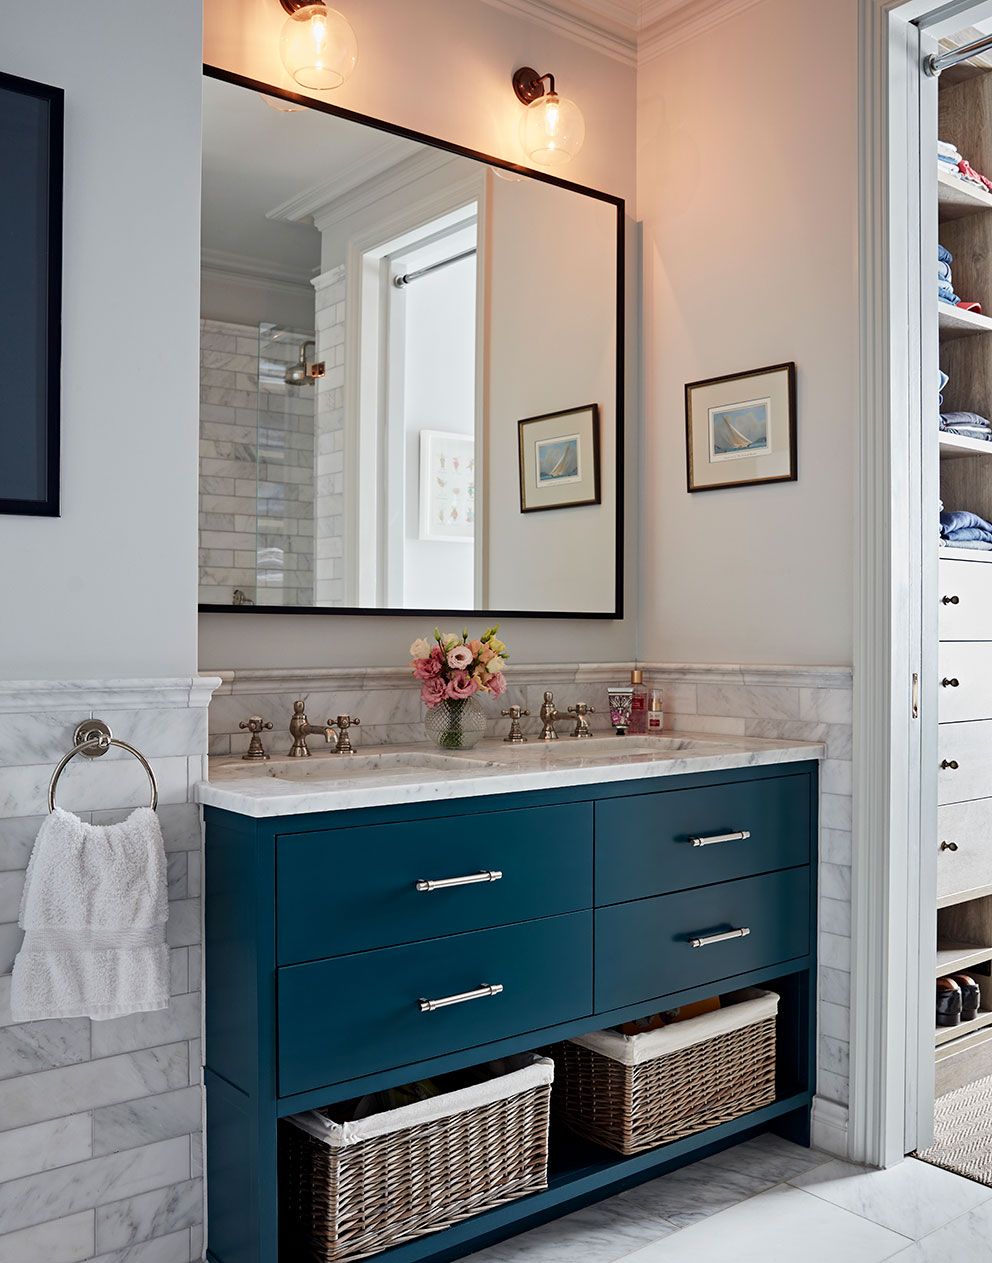 Modern designer bathroom with marble sink and tiles